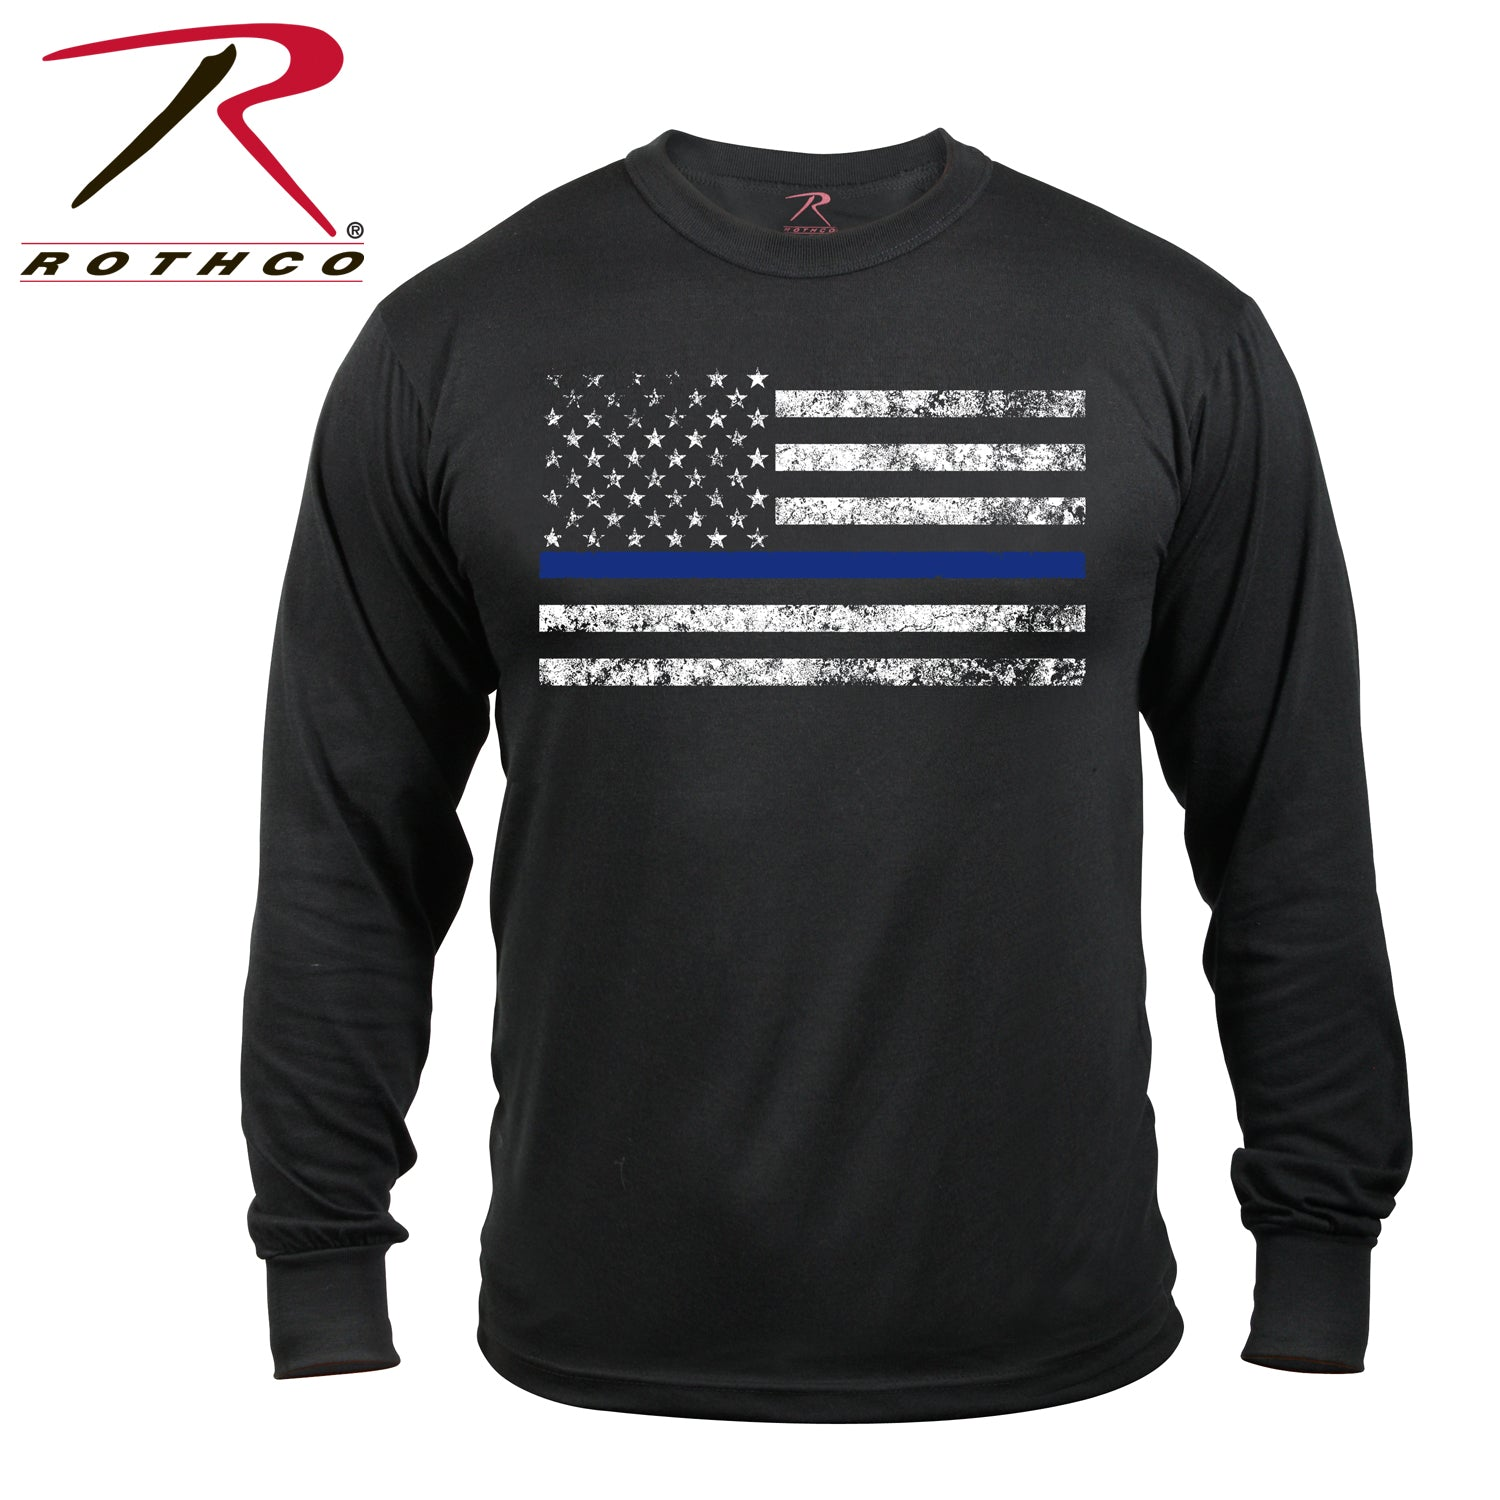 Rothco Thin Blue Line T-Shirt Long Sleeve - red-diamond-uniform-police-supply